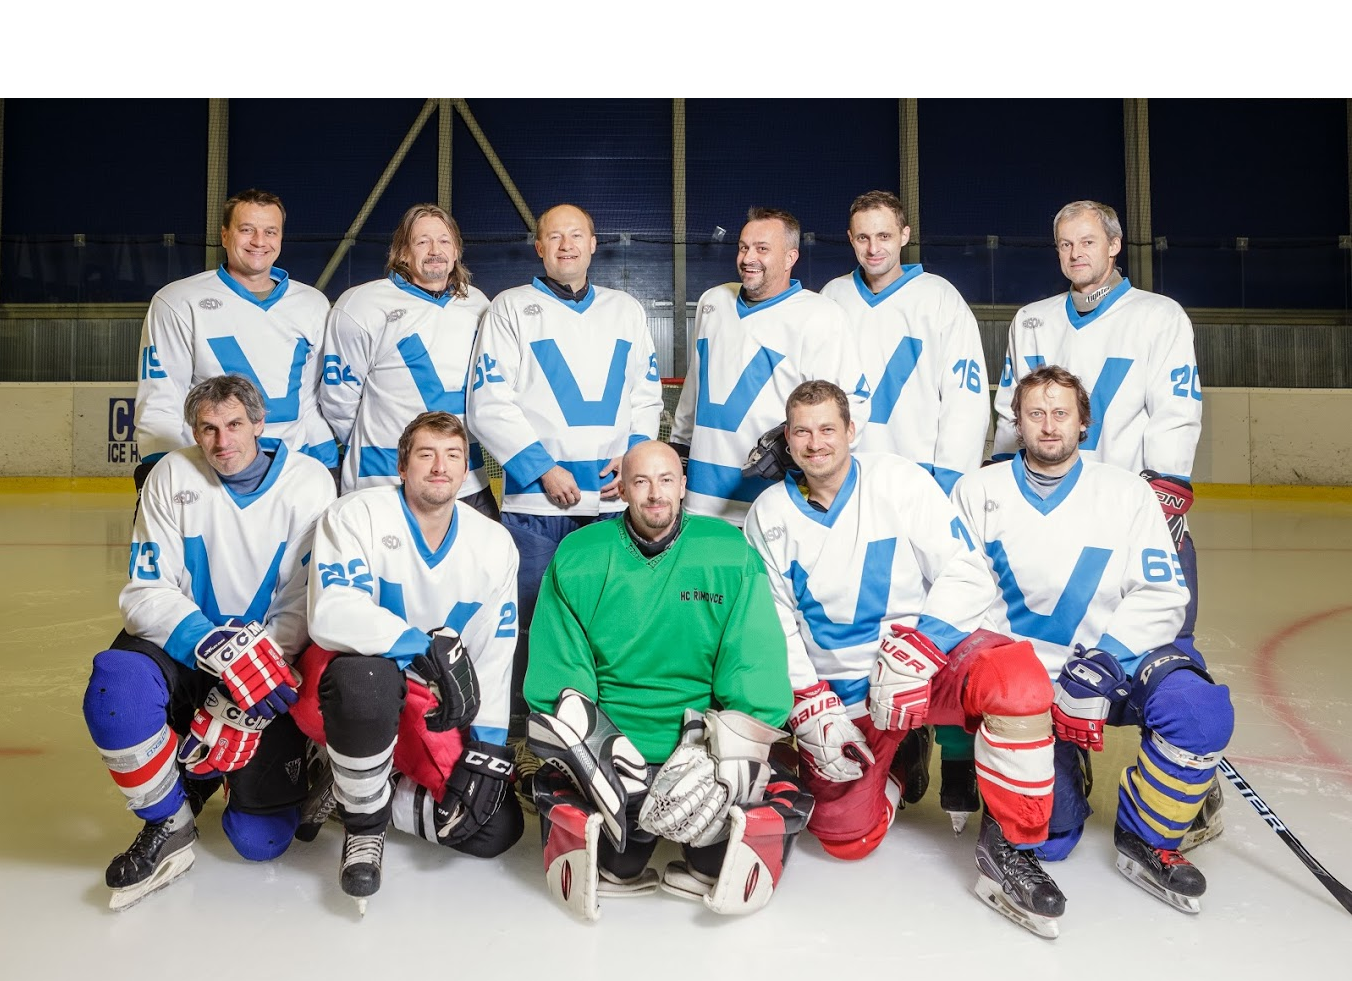 Velteko hockey team